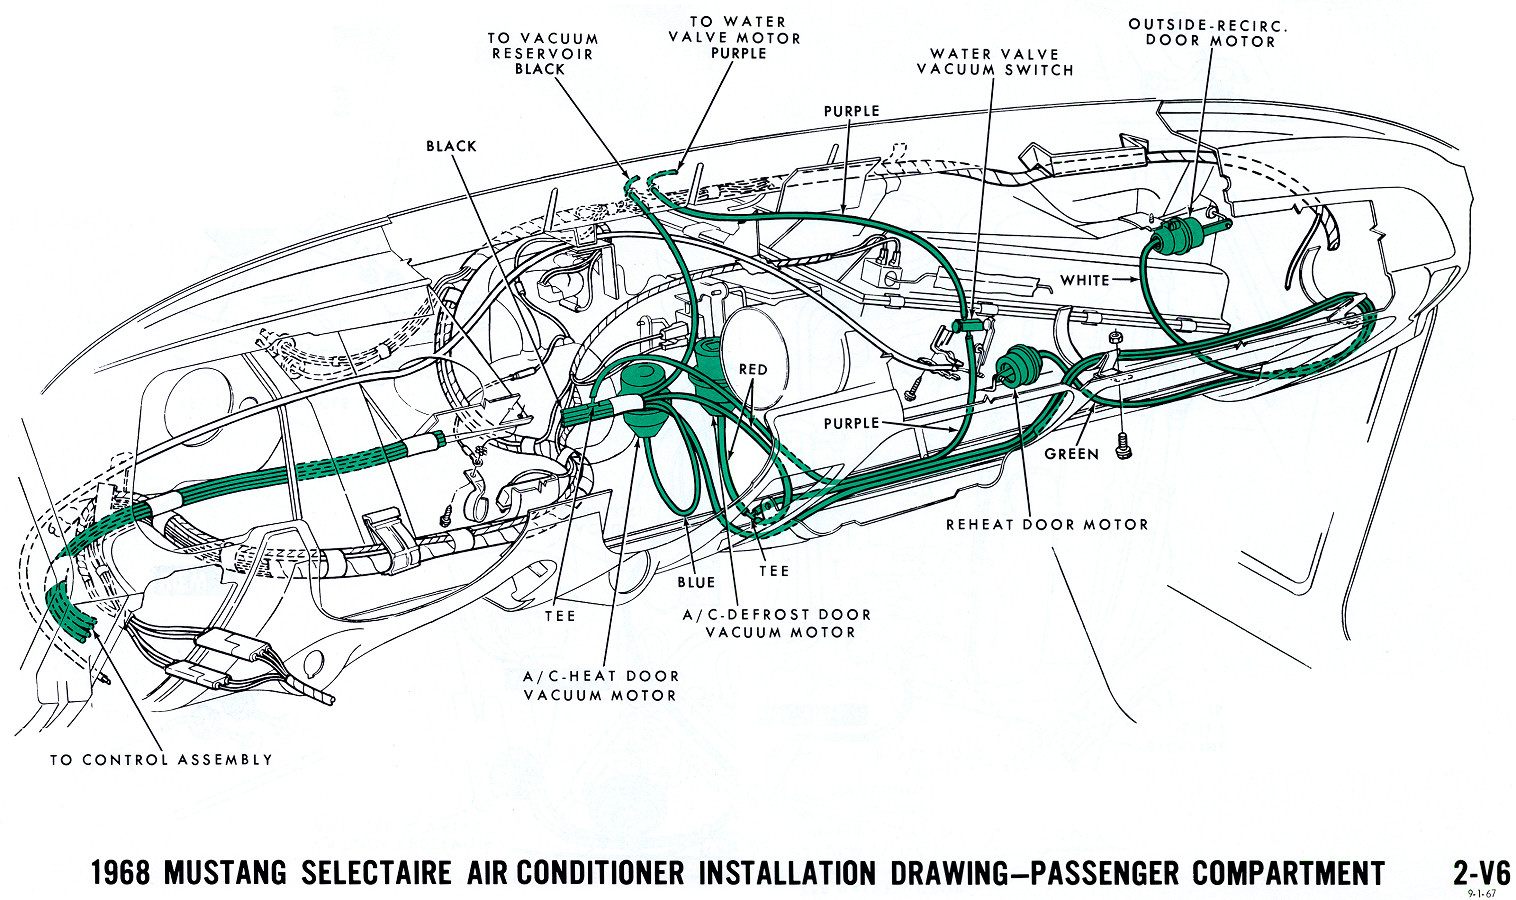 1968 mustang vacuum diagram air conditioning interior 1968 mustang wiring diagrams and vacuum schematics average joe Simple Control Diagram at crackthecode.co